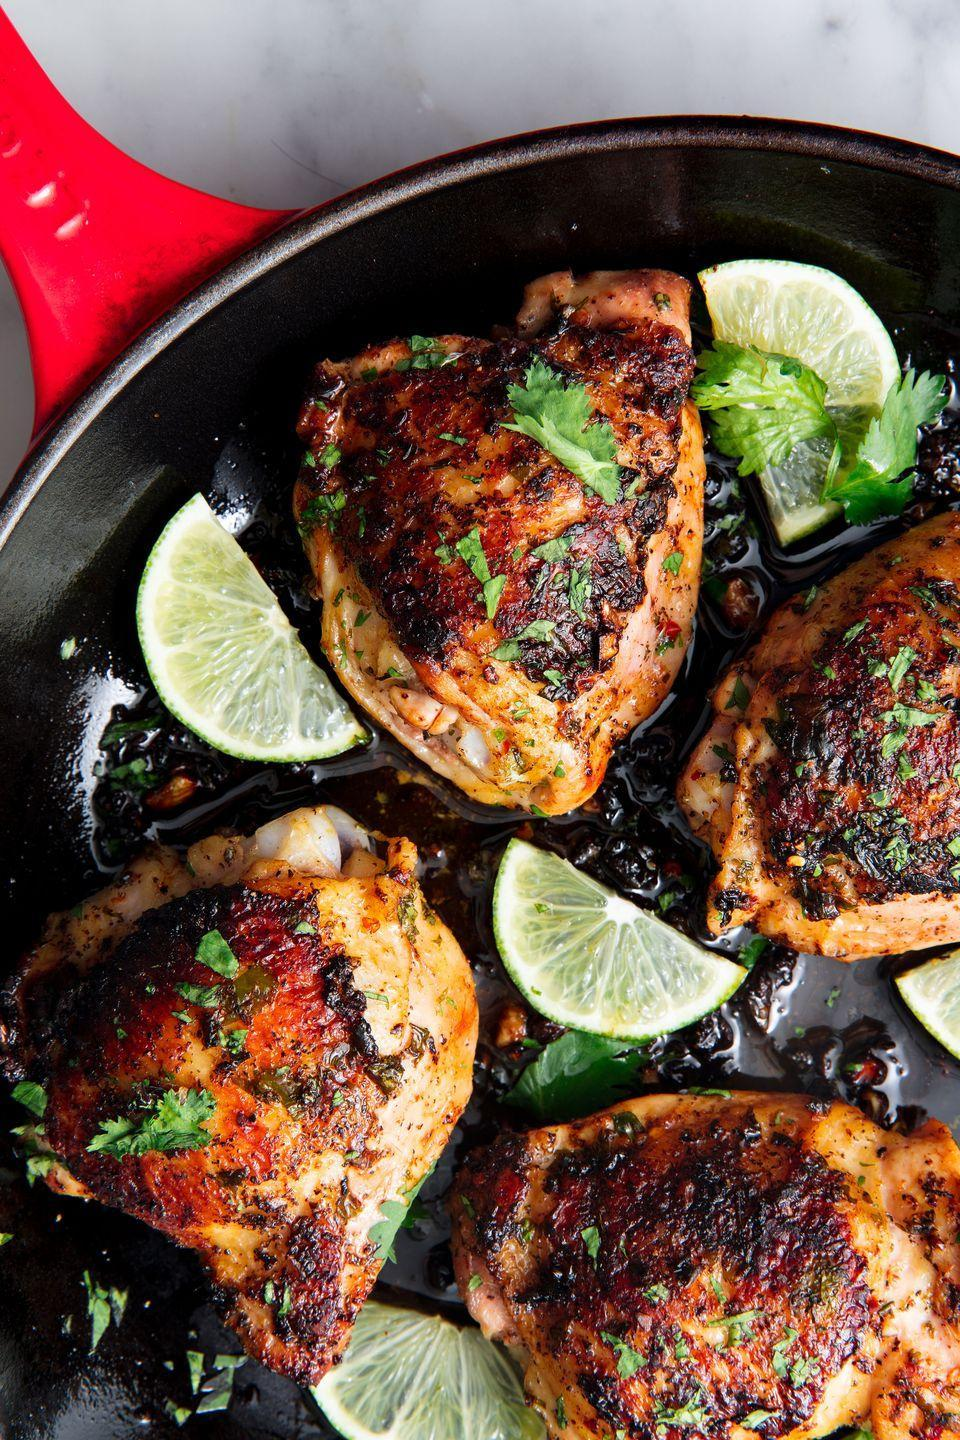 """<p>Pro tip: Chicken thighs almost always cost less than breasts. Plus, the flavor from the crispy skin is unbeatable. </p><p>Get the recipe from <a href=""""https://www.delish.com/cooking/recipe-ideas/a48247/cilantro-lime-chicken-recipe/"""" rel=""""nofollow noopener"""" target=""""_blank"""" data-ylk=""""slk:Delish"""" class=""""link rapid-noclick-resp"""">Delish</a>.</p>"""